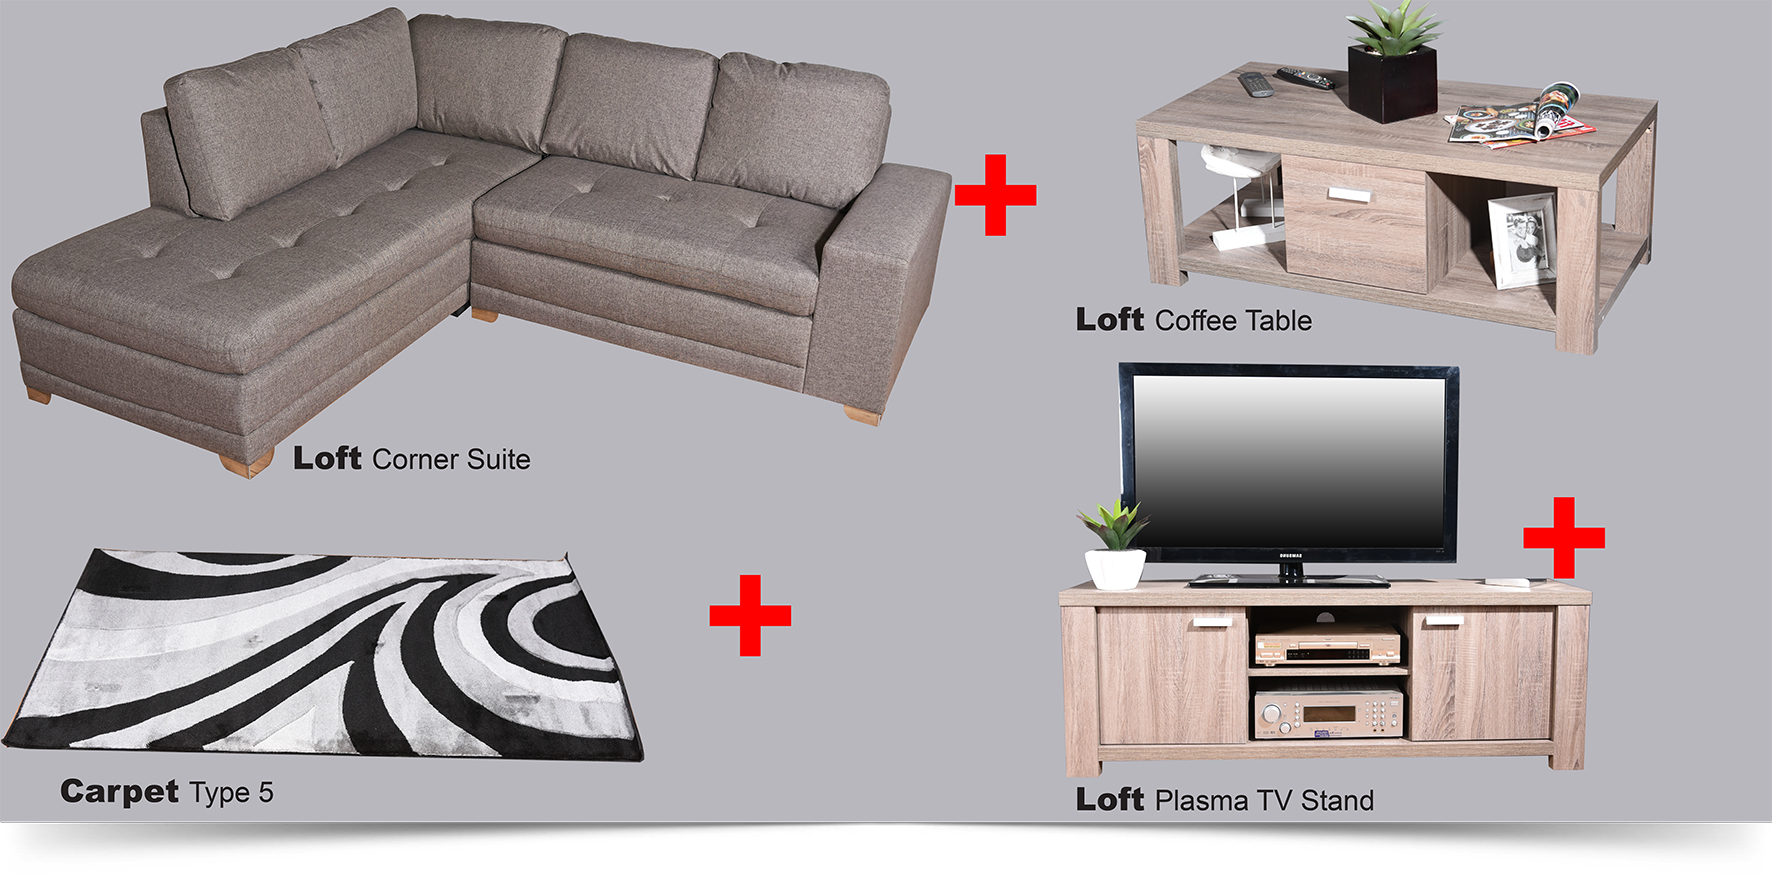 Loft Package Deal | Complete Living room for only R11 999